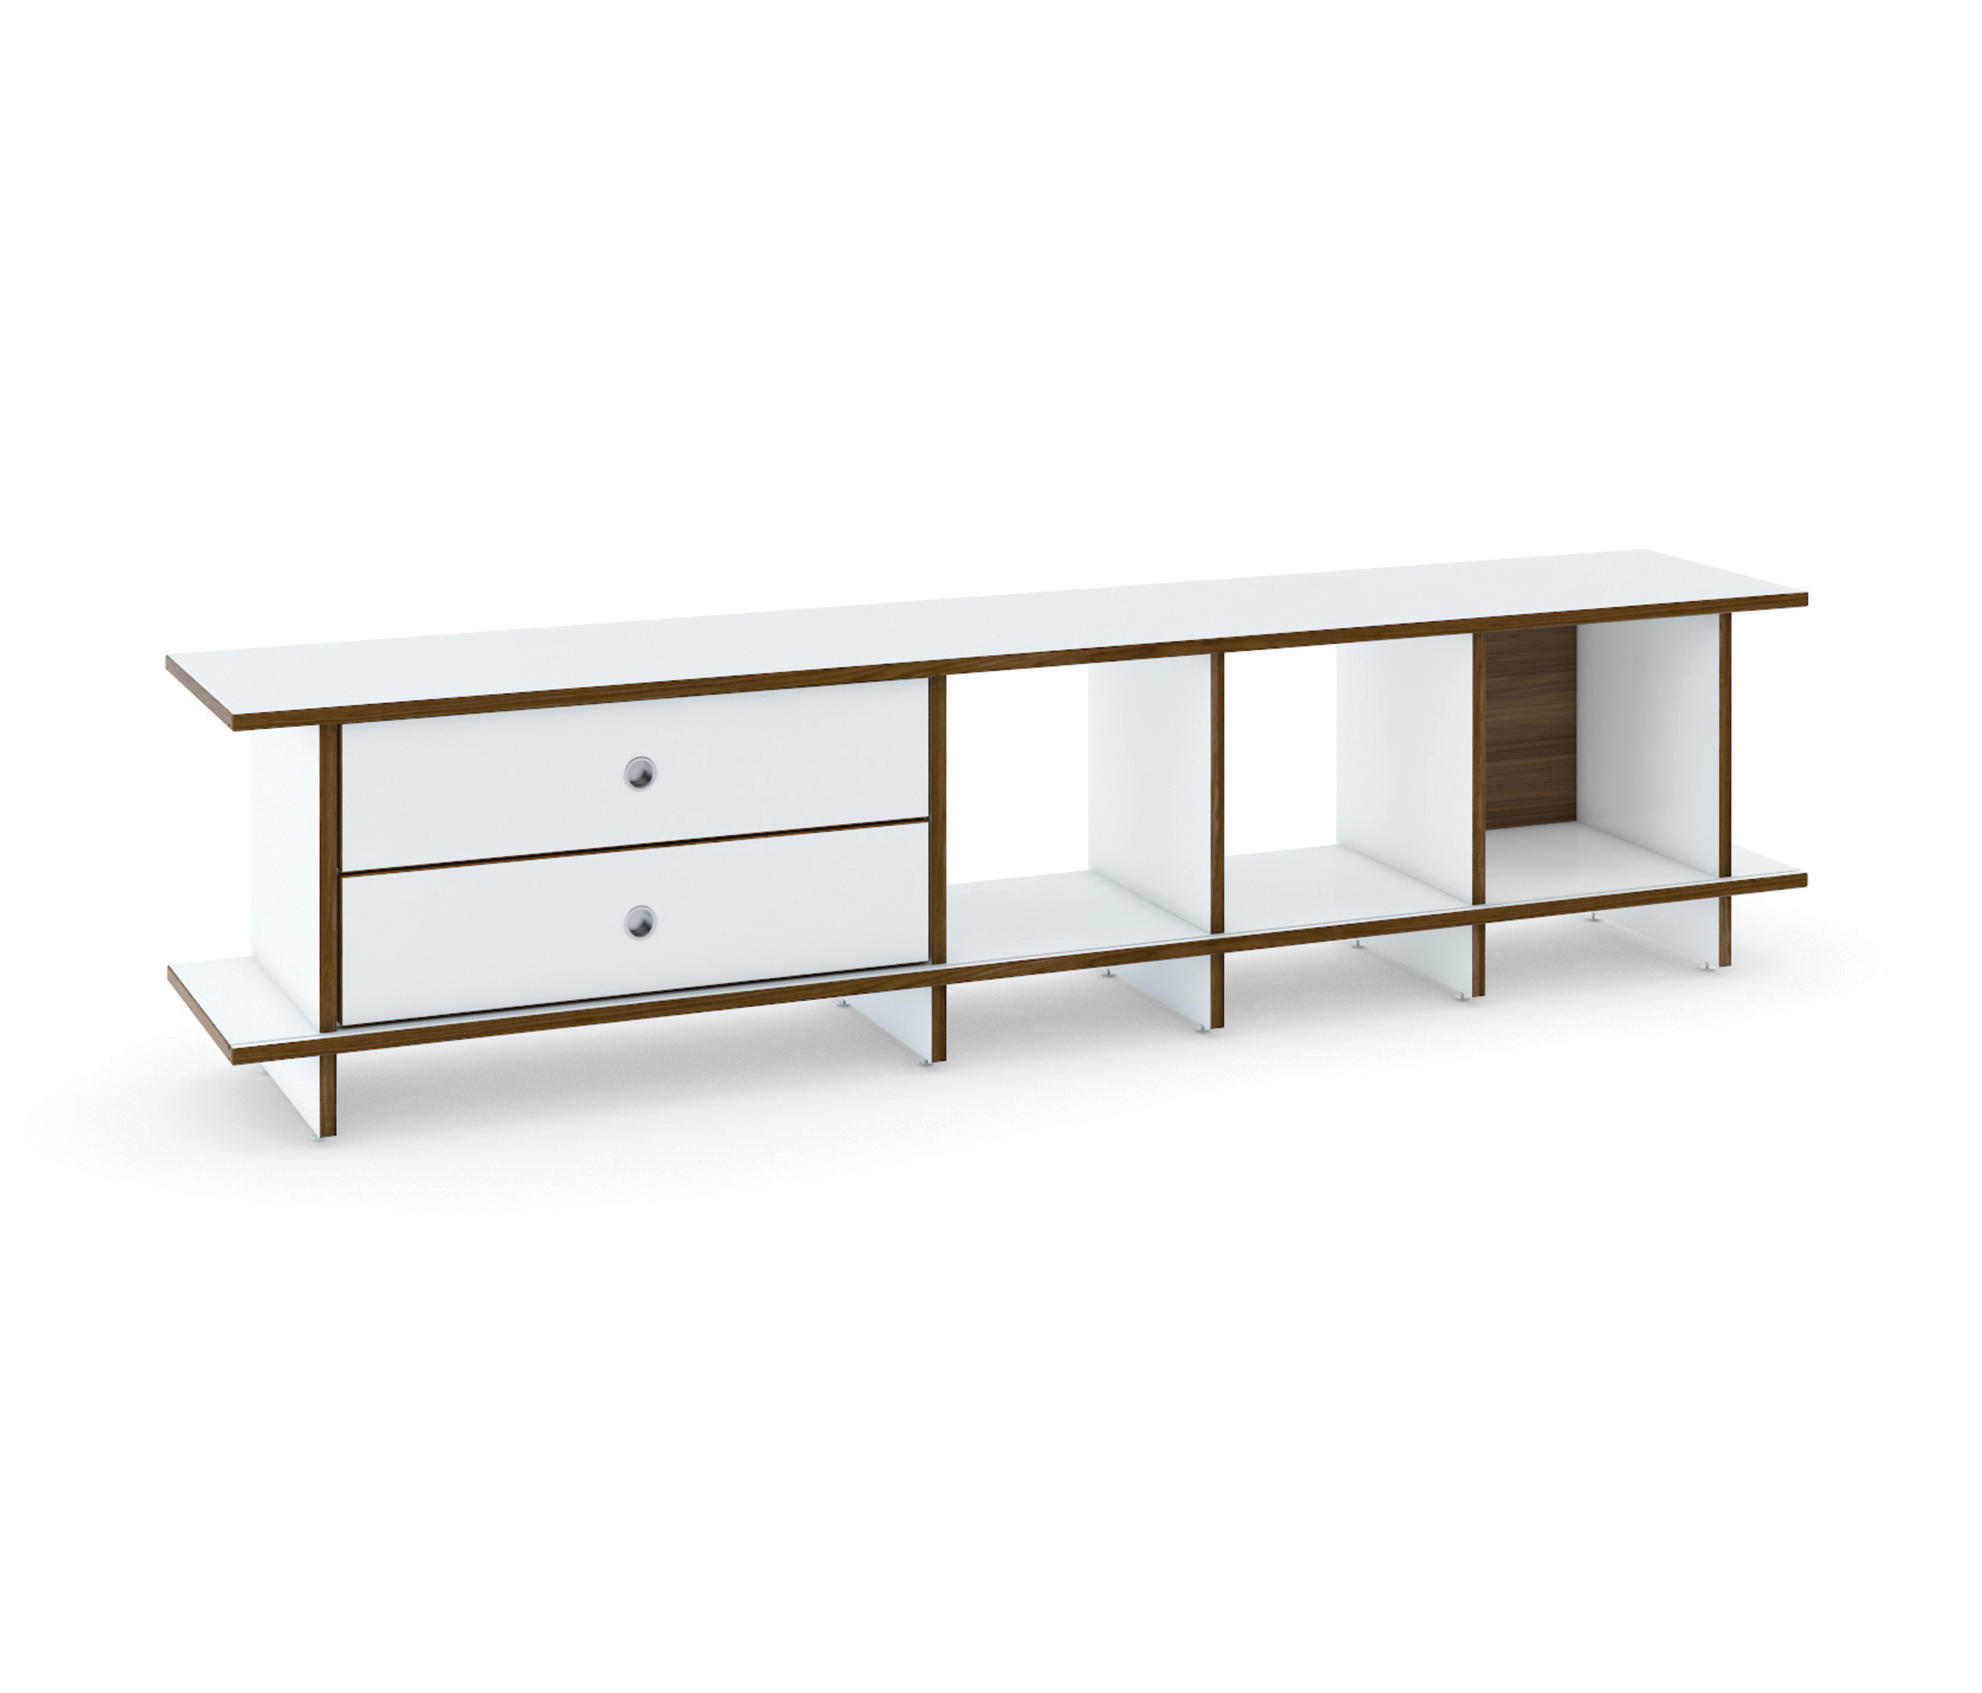 Qr w nb sideboard sideboards from oliver conrad architonic for Sideboard qr